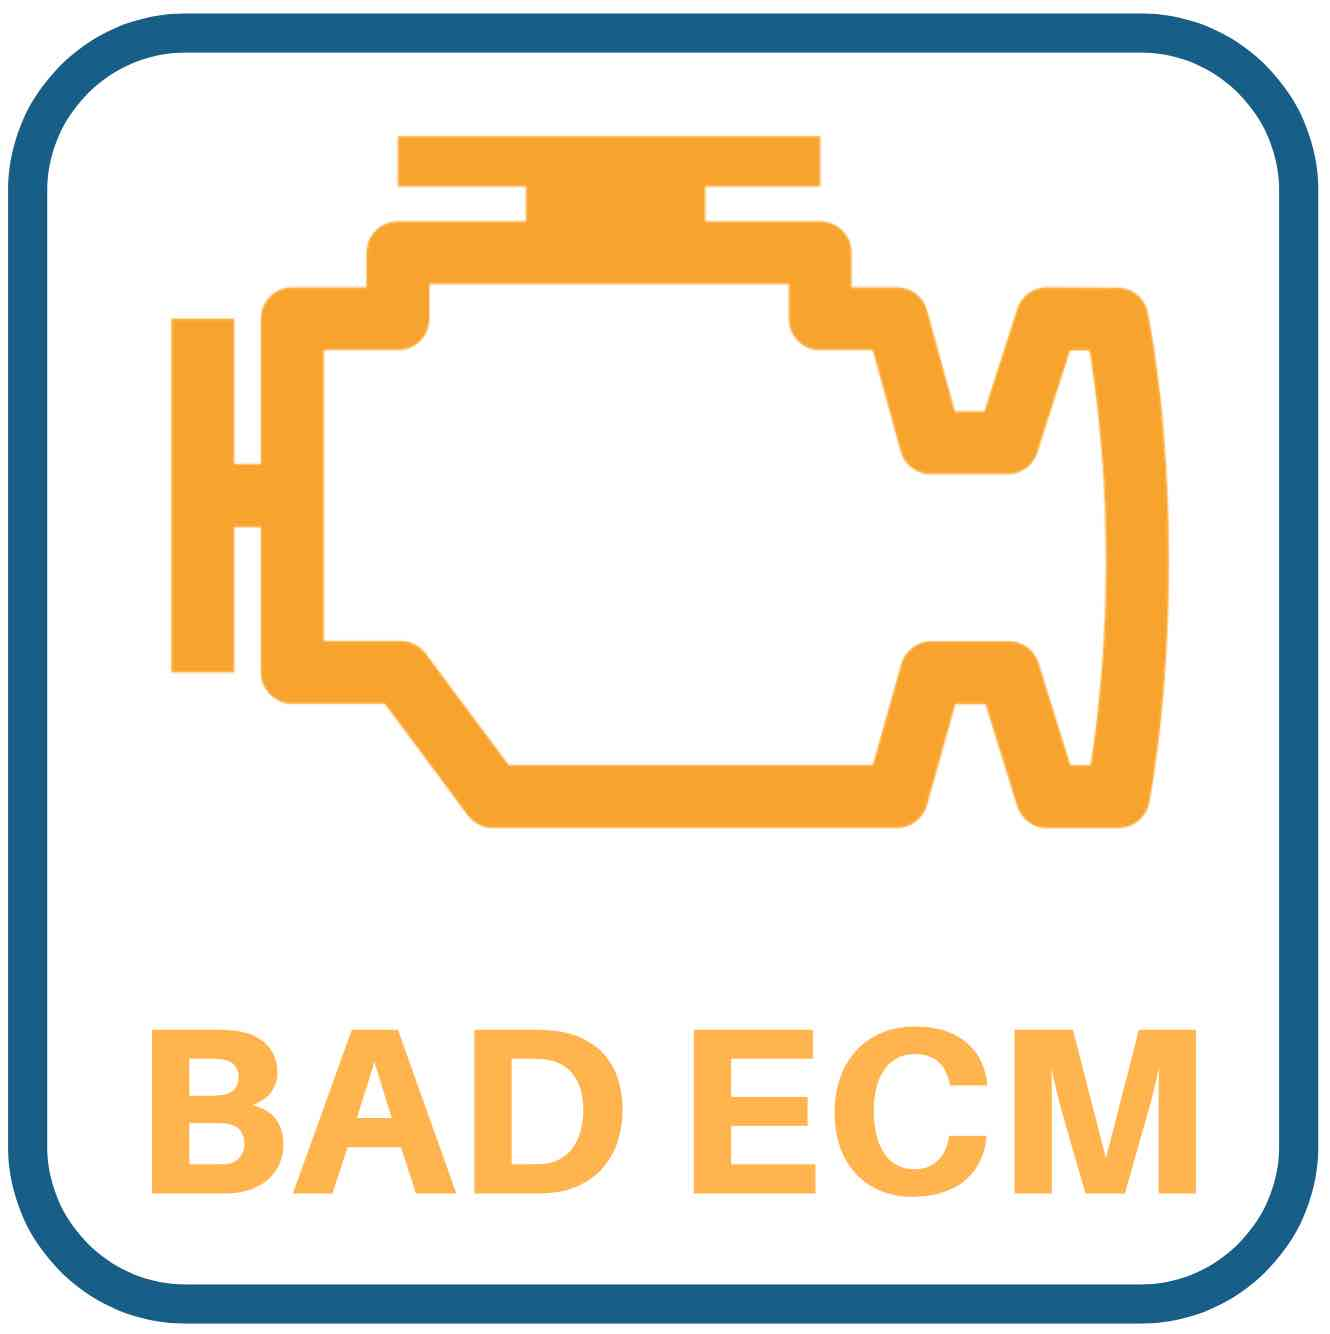 Chevy Orlando Bad ECM Symptoms